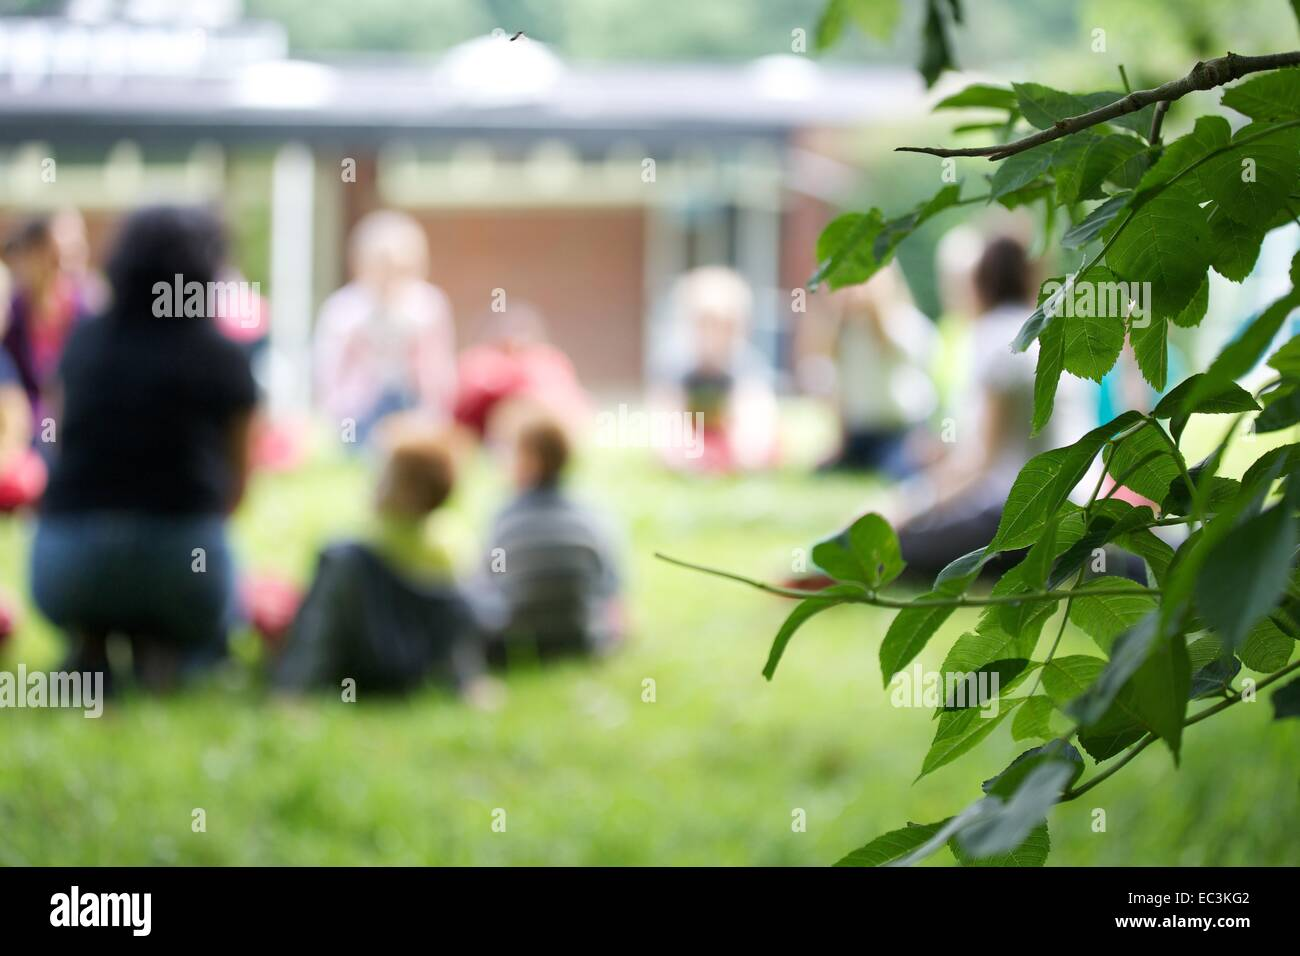 A group of british schoolchildren having a lesson outside on the grass with their teacher - Stock Image